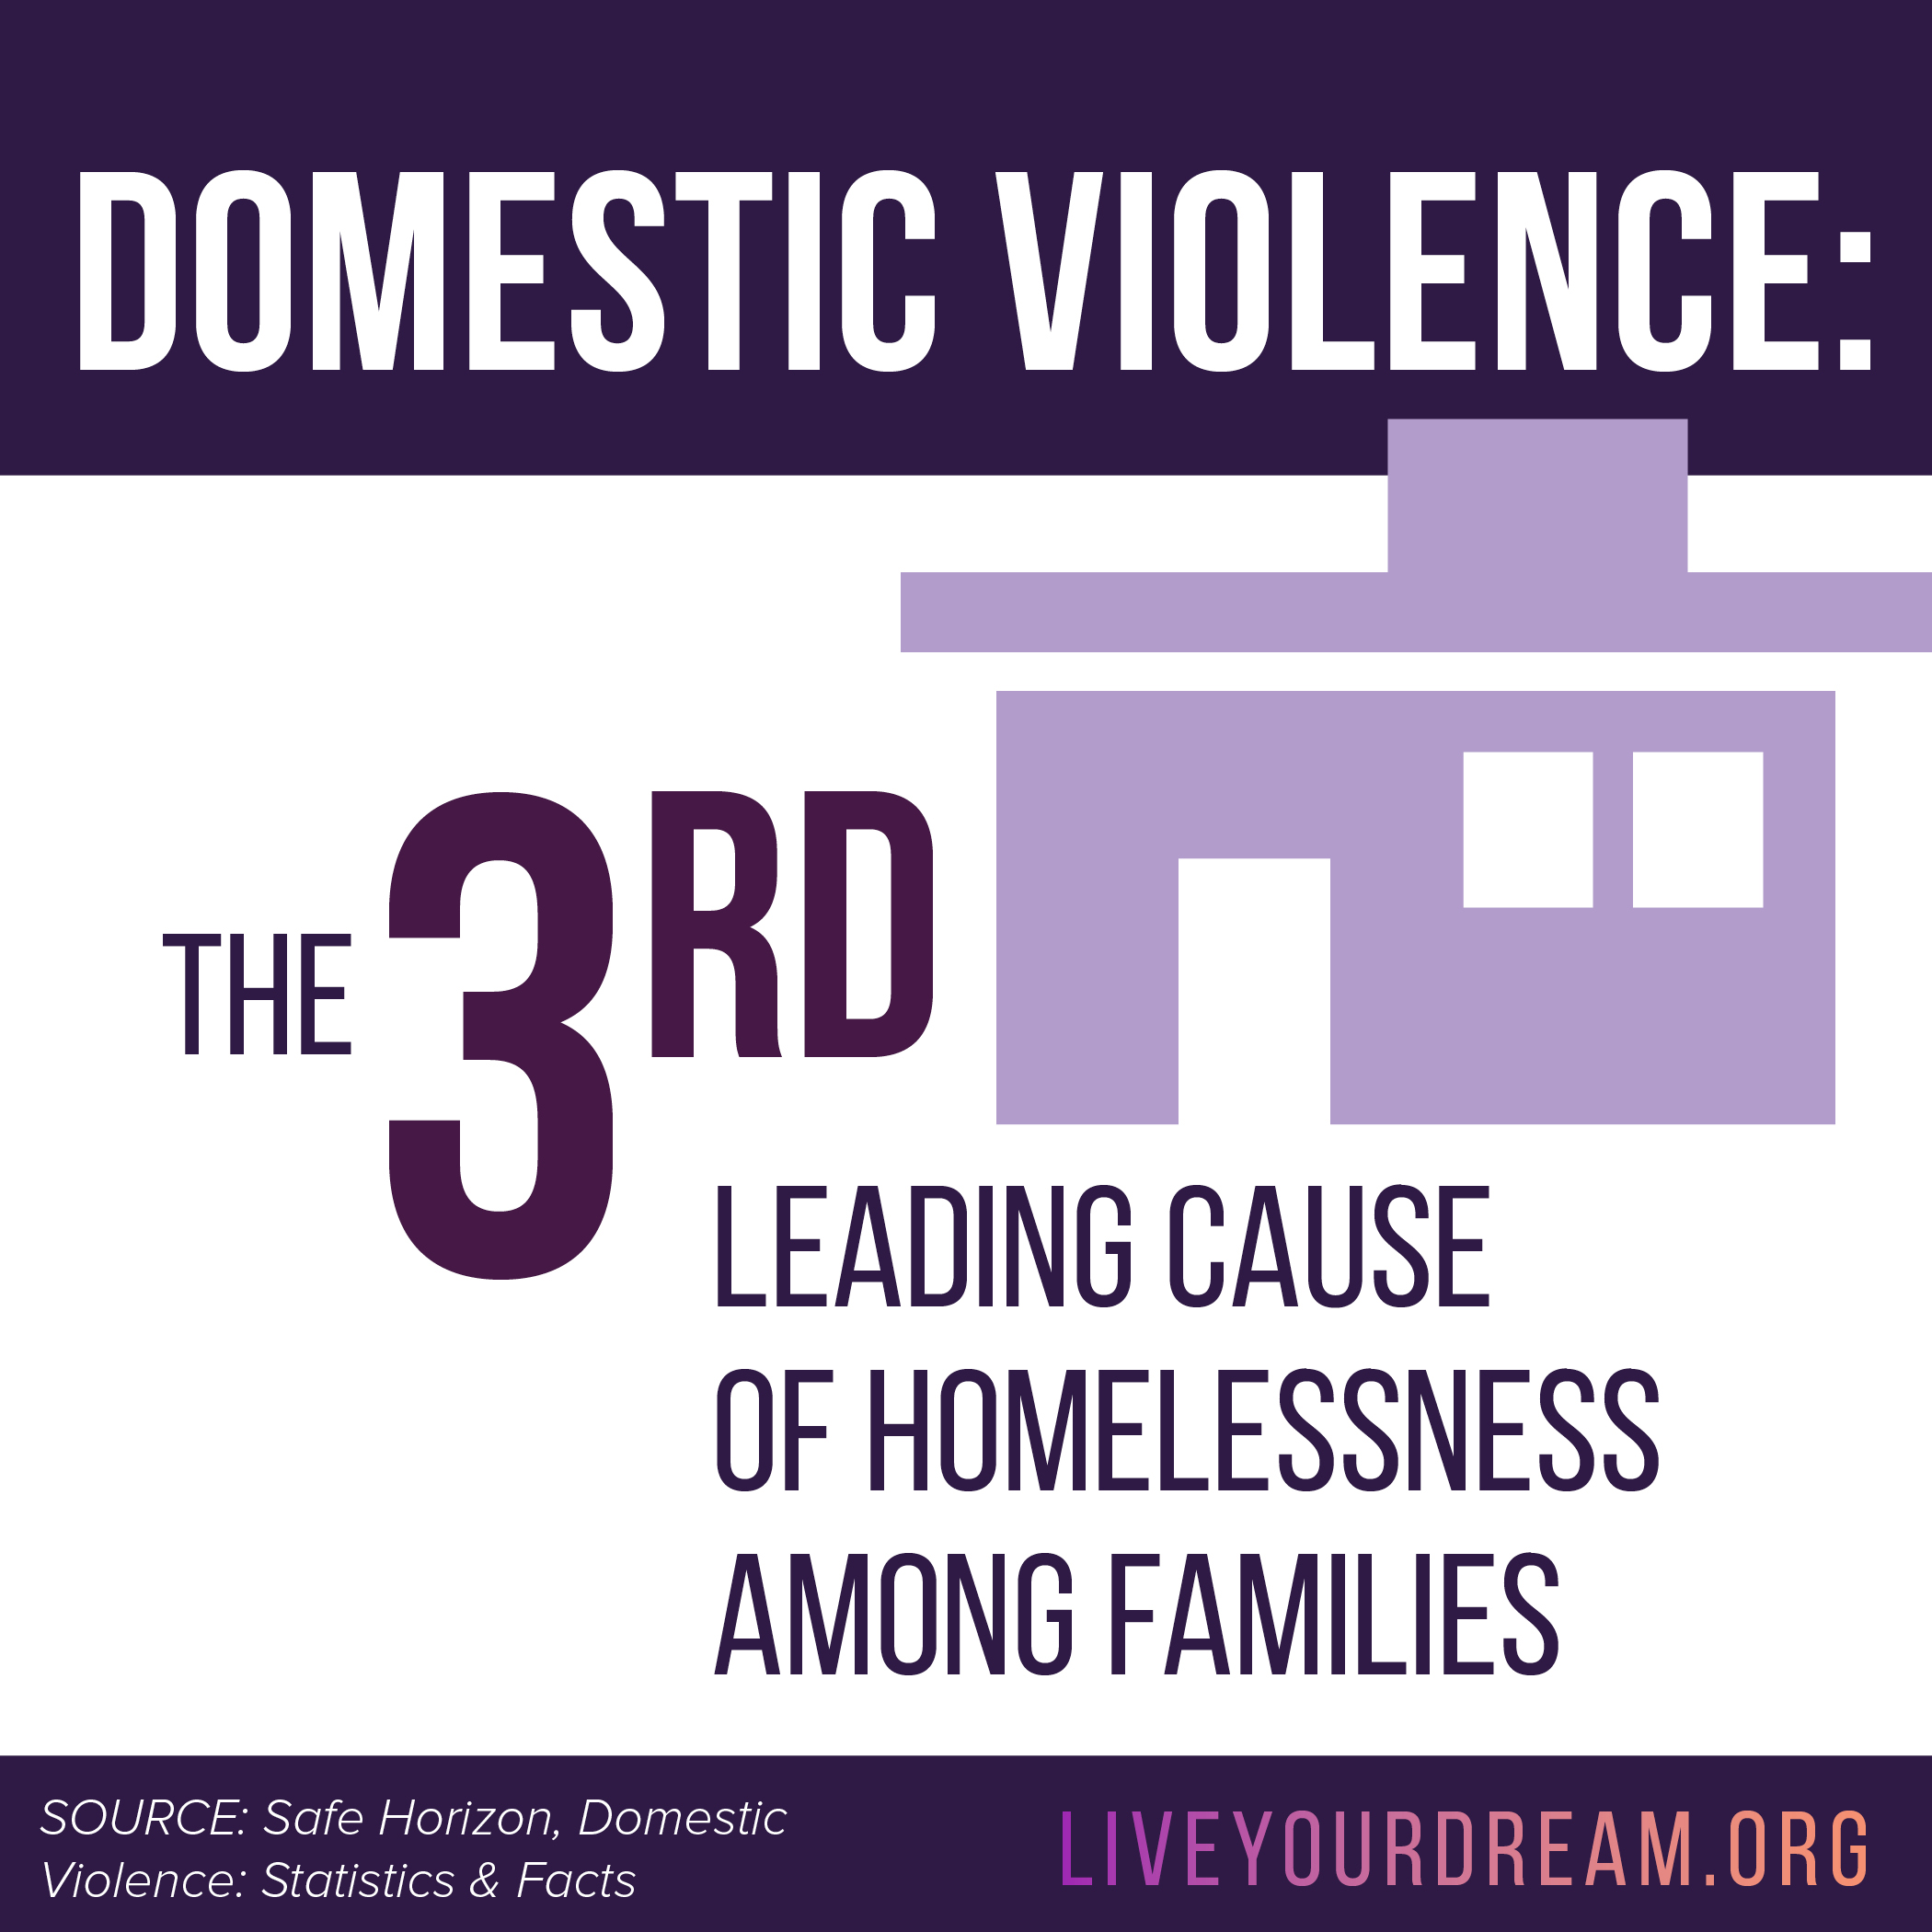 homelessness and domestic violence awareness A homelessness crisis is building around the country, particularly in victoria, as domestic violence awareness campaigns lead to more action to remove women and children from dangerous homes without a matching increase in available support.